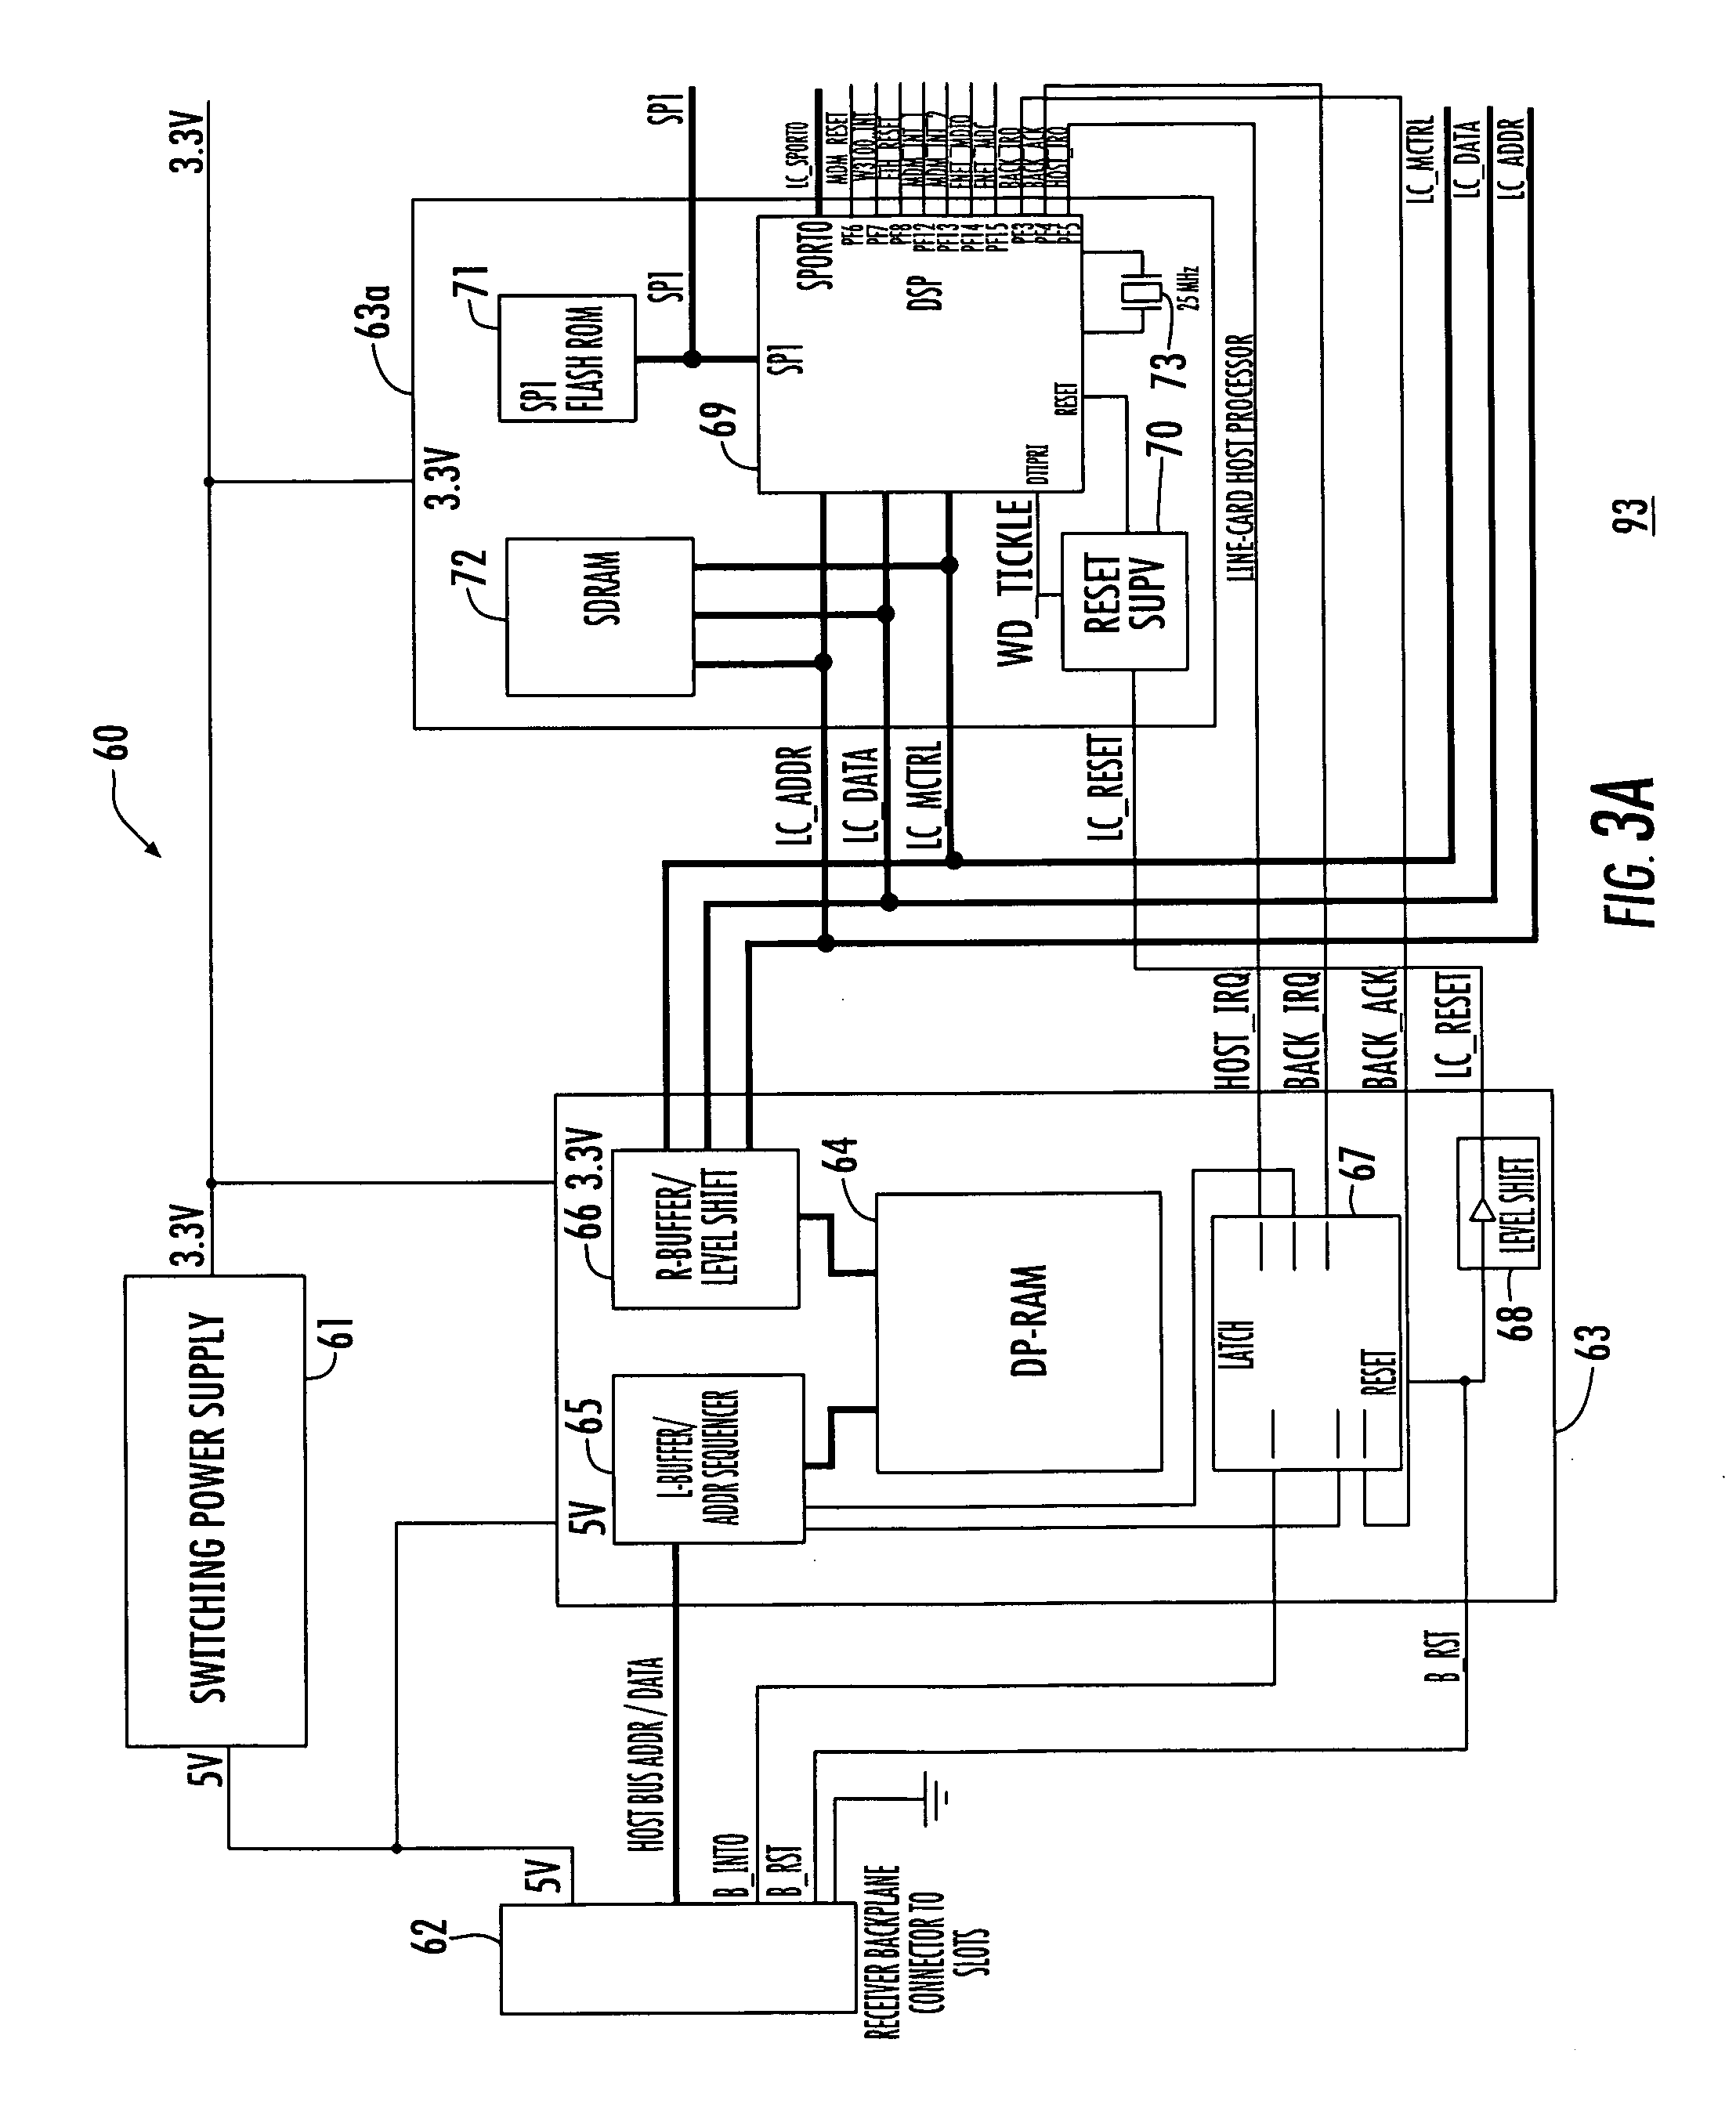 US20090058630A1 20090305 D00004?resize\\\\\\\=665%2C814 goodman sequencer wiring diagram fan carrier heat pump schematic coleman eb15b wiring diagram at bakdesigns.co